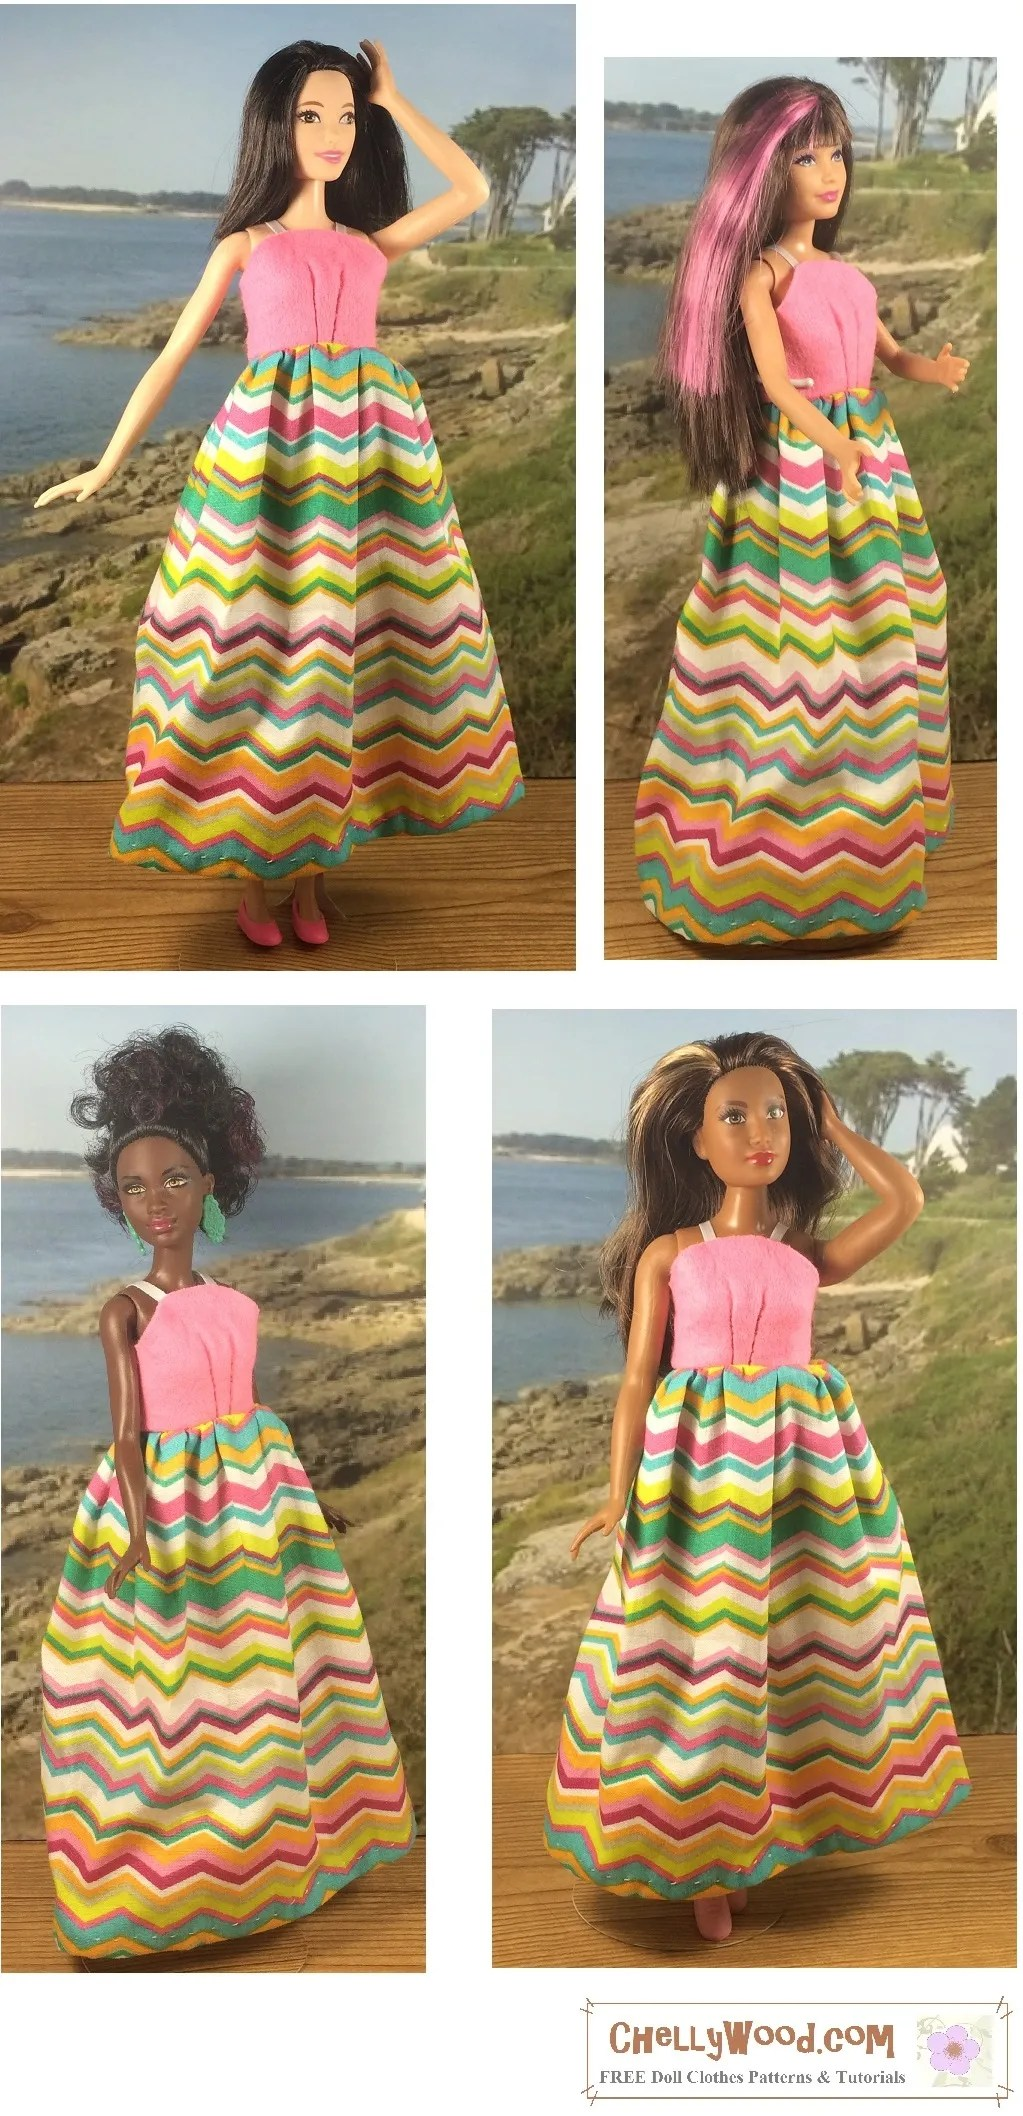 Please click on the link in the caption, to navigate to the page, where you can download this free pattern and watch tutorial videos showing how to make this summer sundress that fits many fashion dolls). The image shows a Tall Barbie, a Skipper, a Petite Barbie, and a Curvy Barbie doll, all modeling the same dress with a pink strappy bodice top and a multi-colored maxi skirt with zigzag stripes. The dress uses ribbon straps at the top of the solid-colored pink felt bodice. This pattern is super simple, and will make an easy first sewing project for beginners who are just learning to sew.